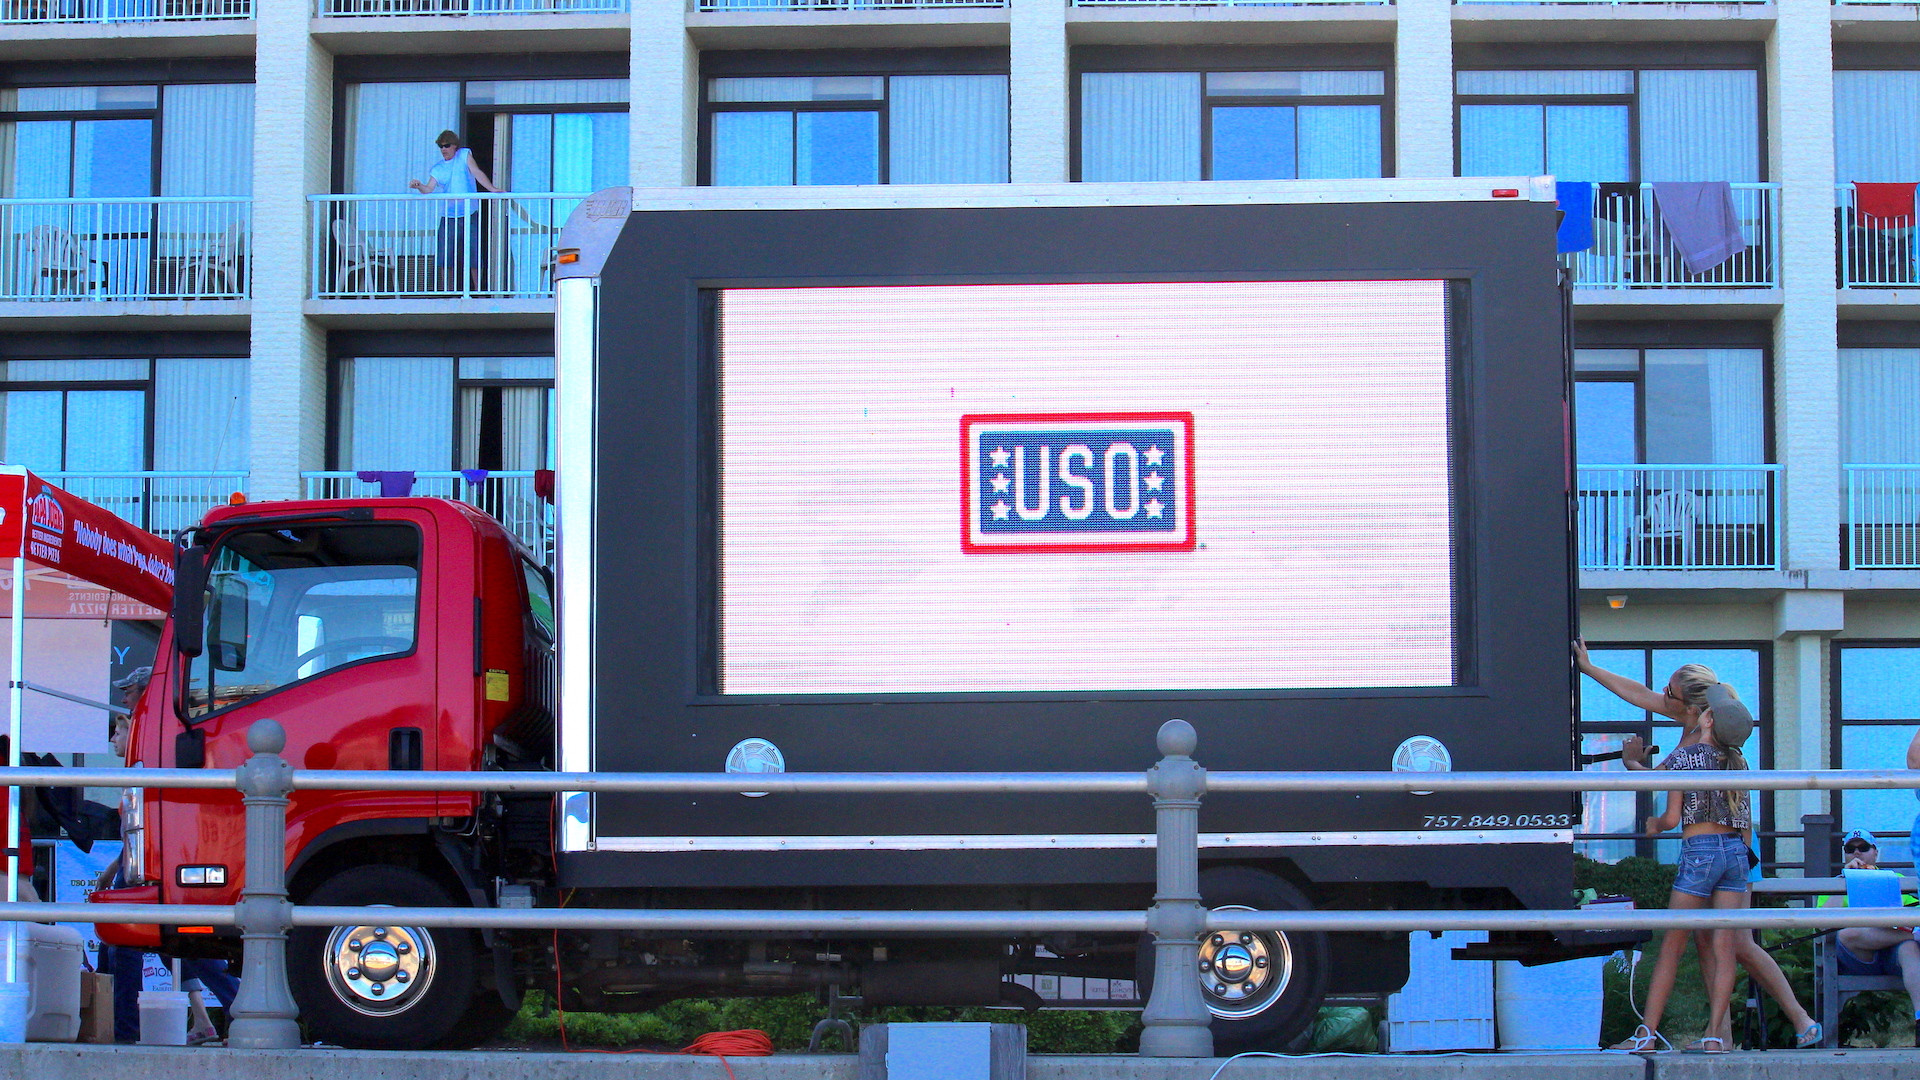 USO - PIC - 003 - MATV BILLBOARDS - CALL